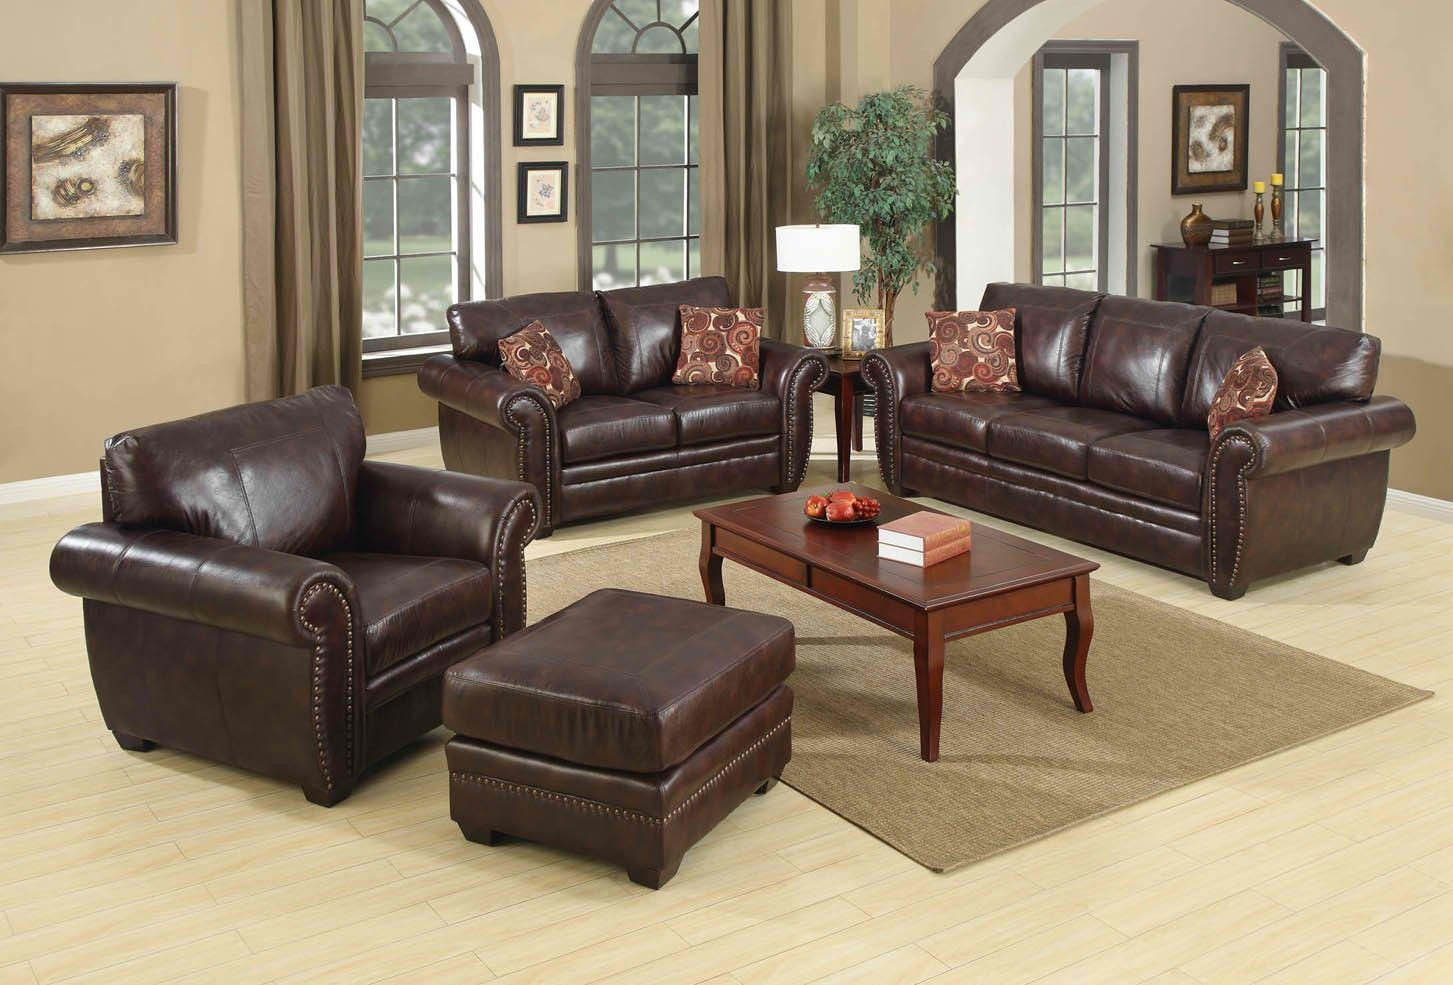 Wall Colors for Brown Furniture